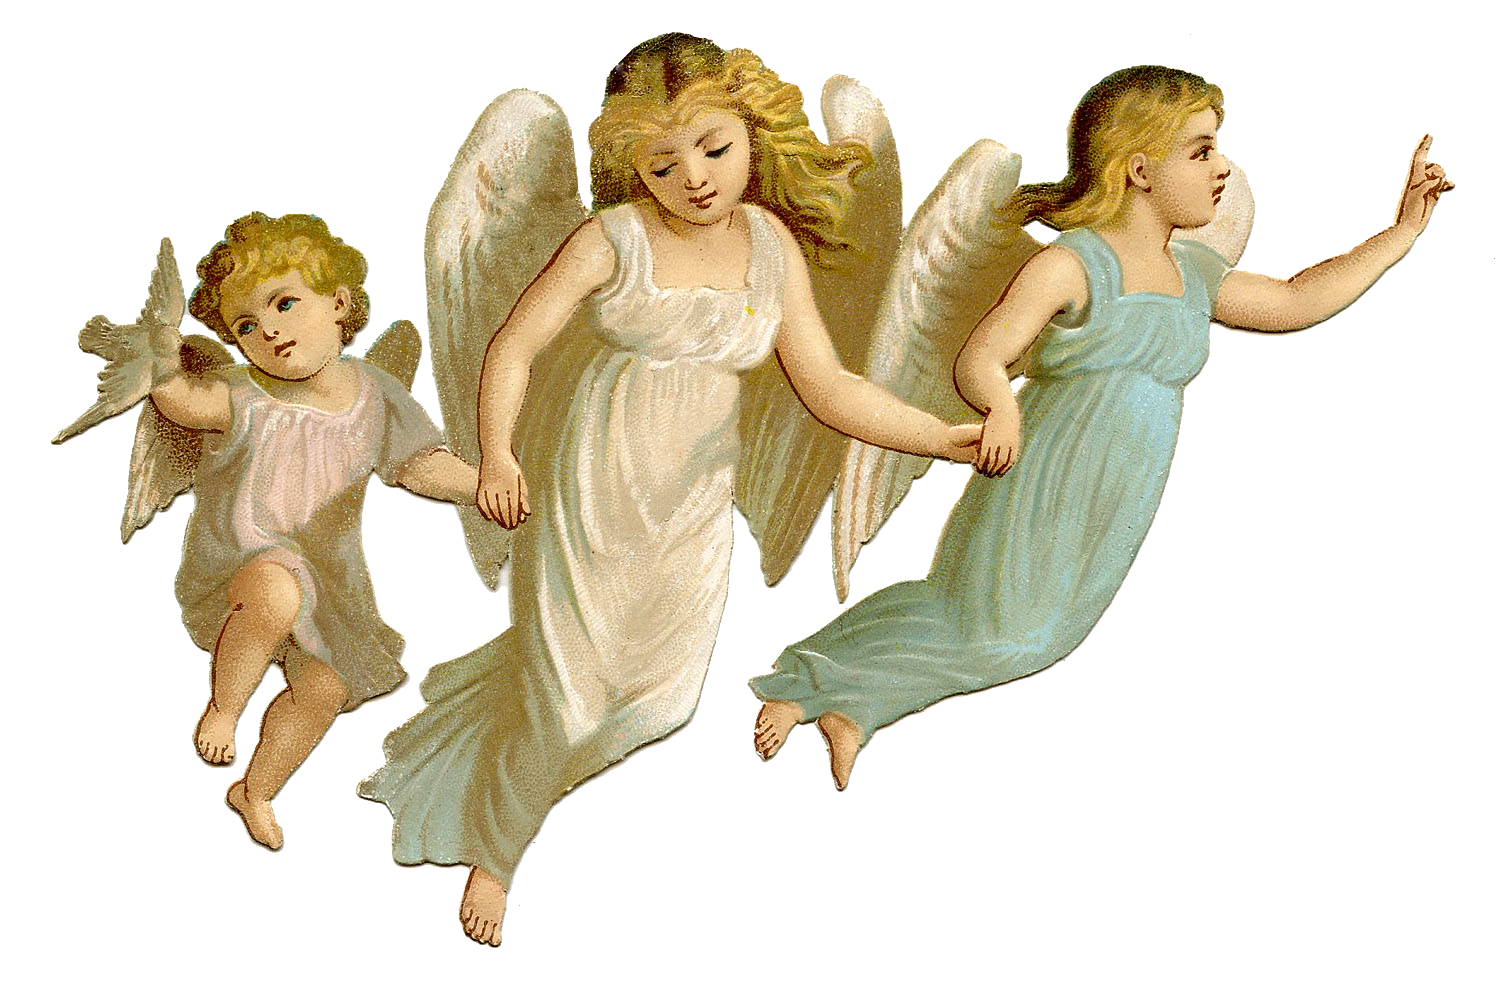 Baby angels images png. Angel pic arts